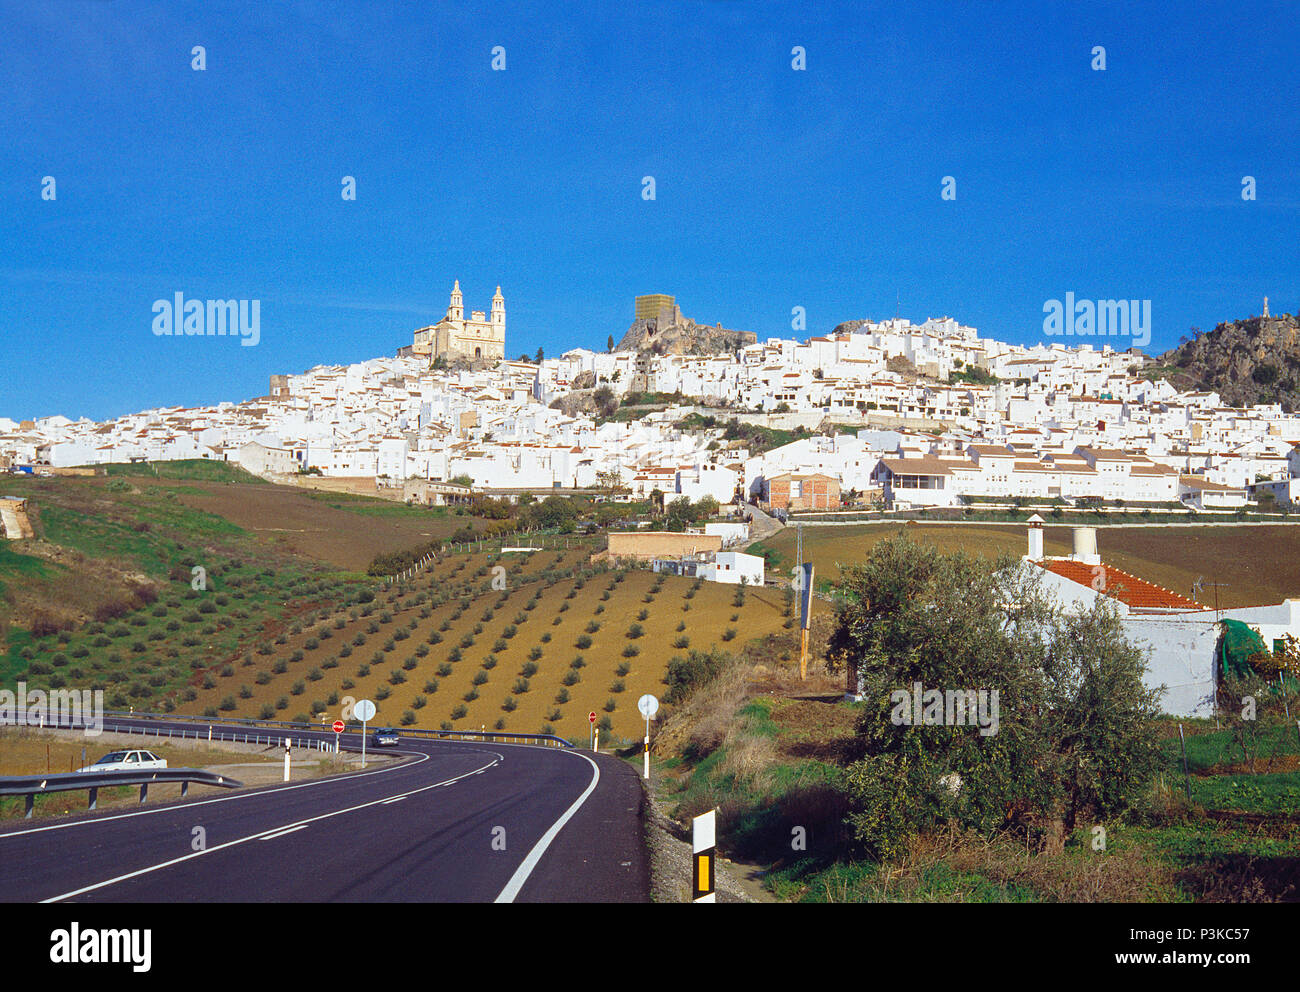 Overview. Olvera, Cadiz province, Andalucia, Spain. - Stock Image